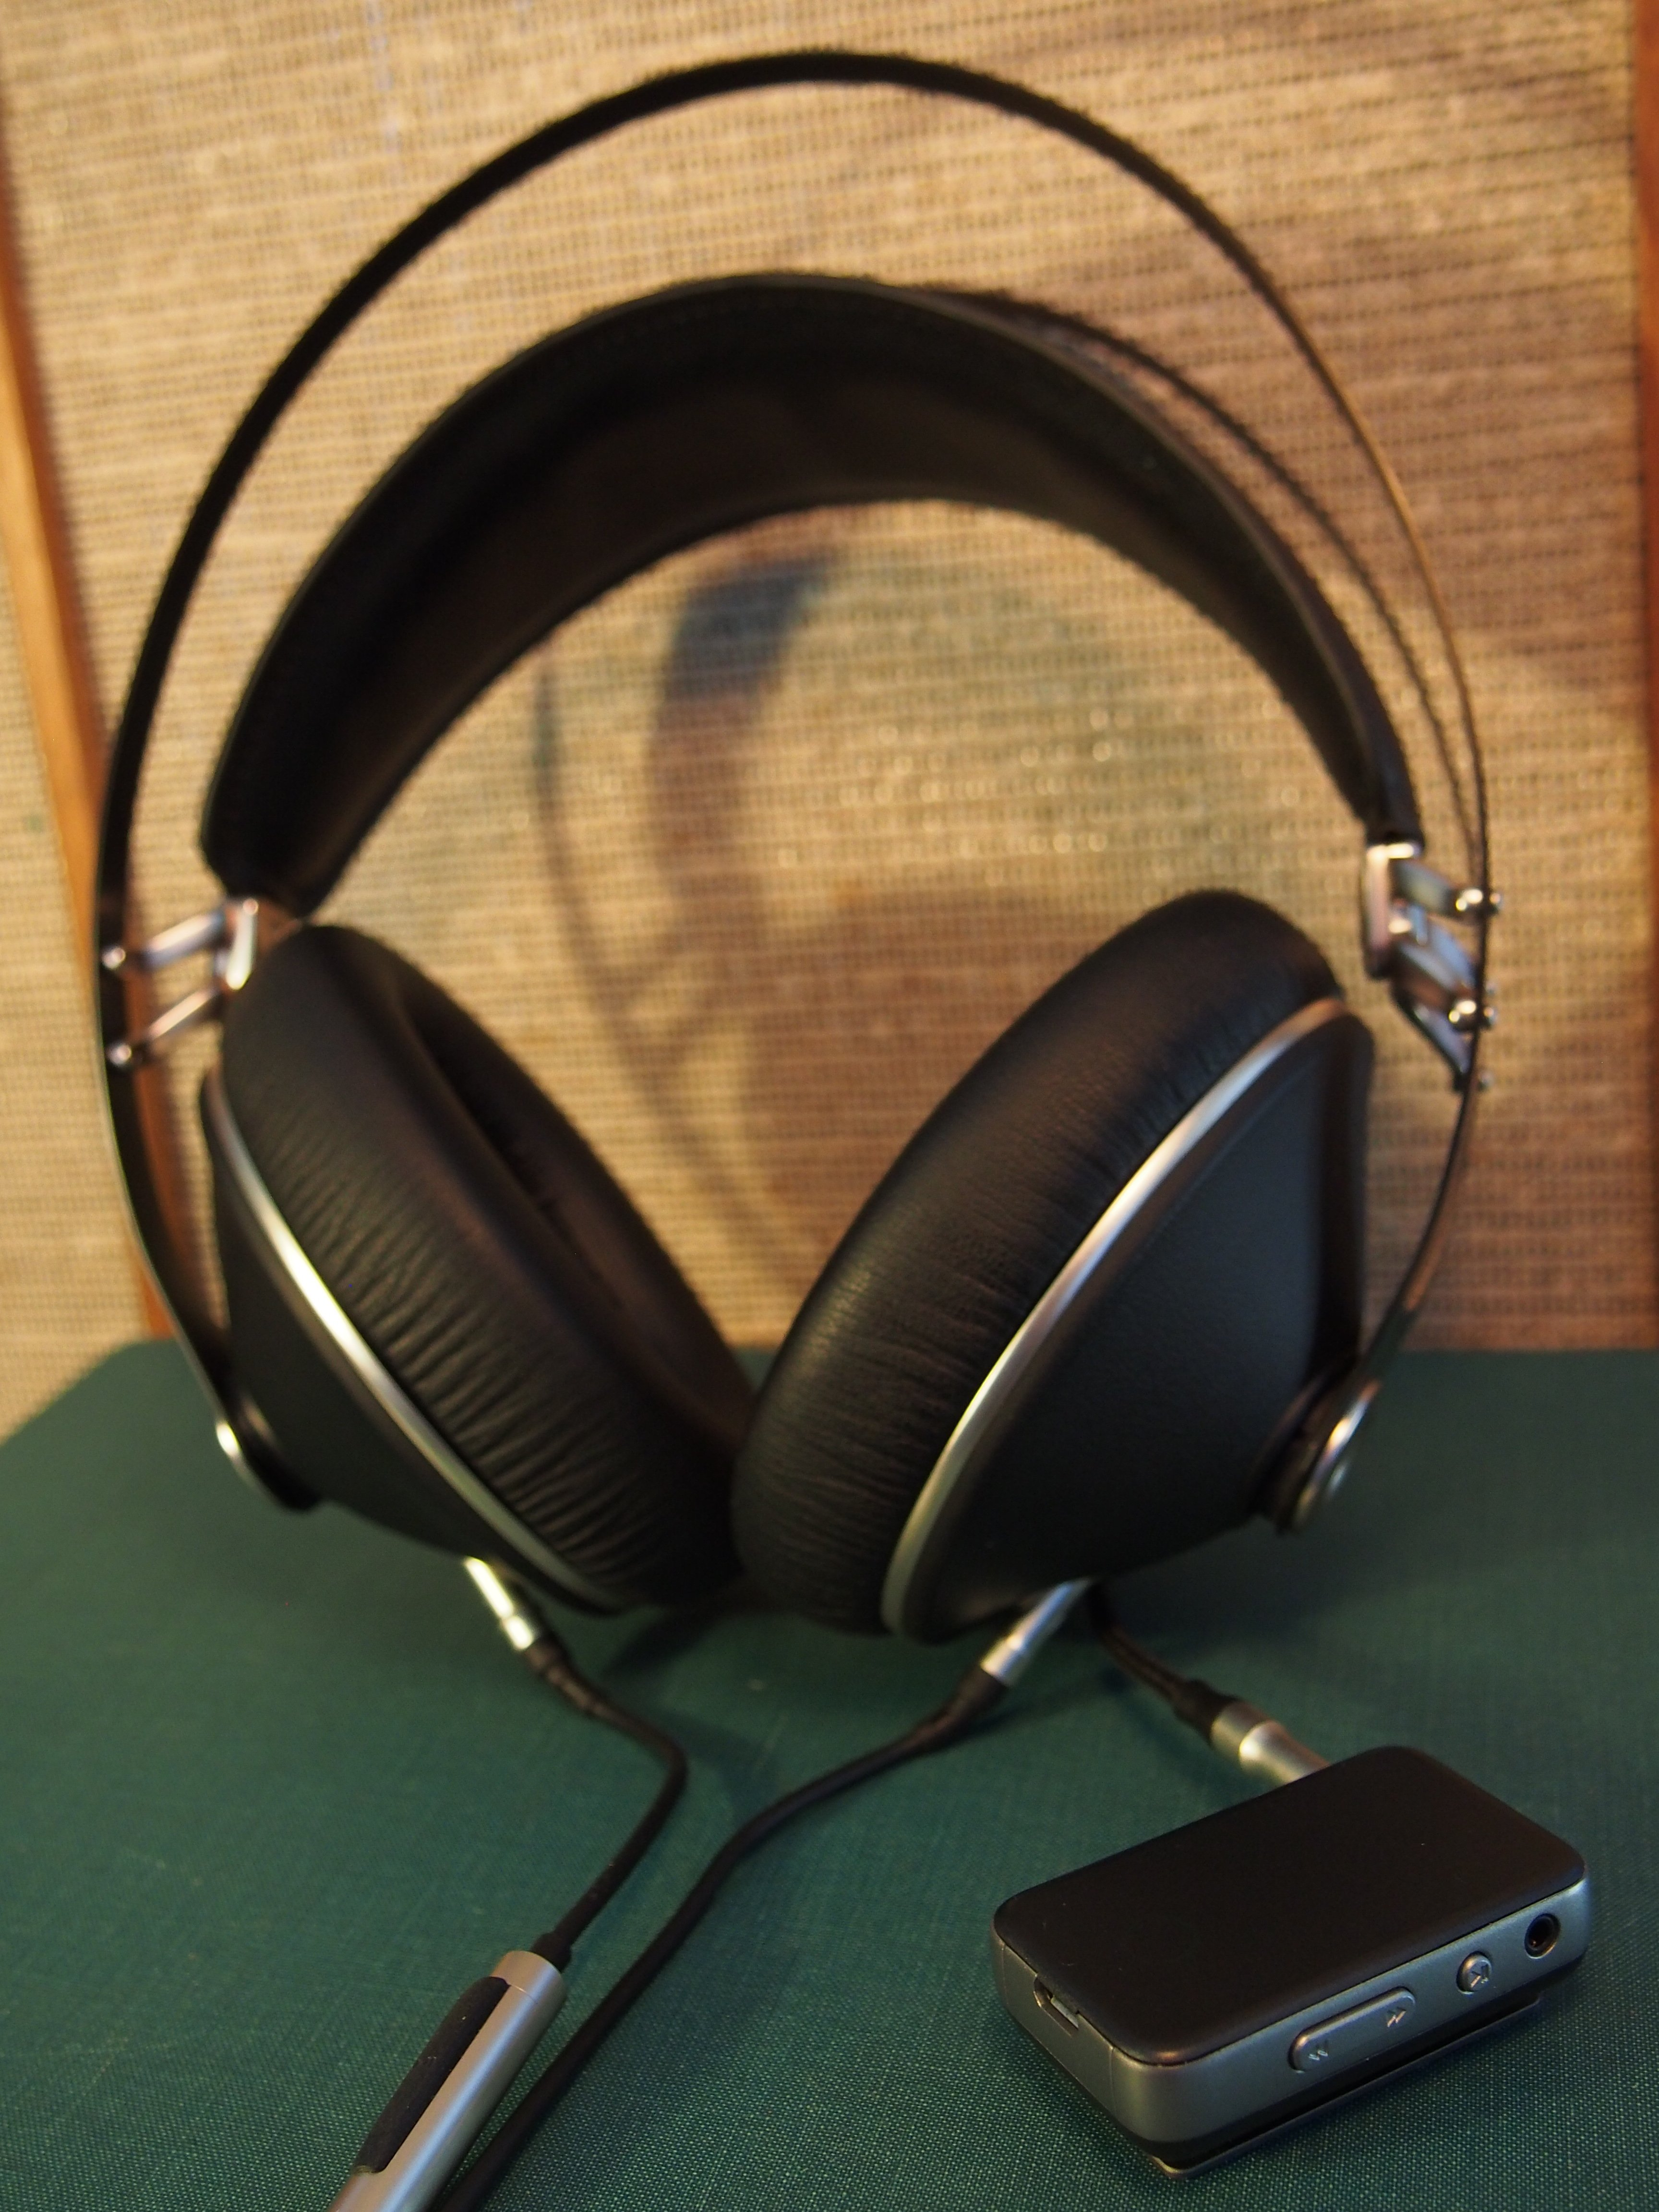 Radsone EarStudio ES100 | Reviews | Headphone Reviews and Discussion